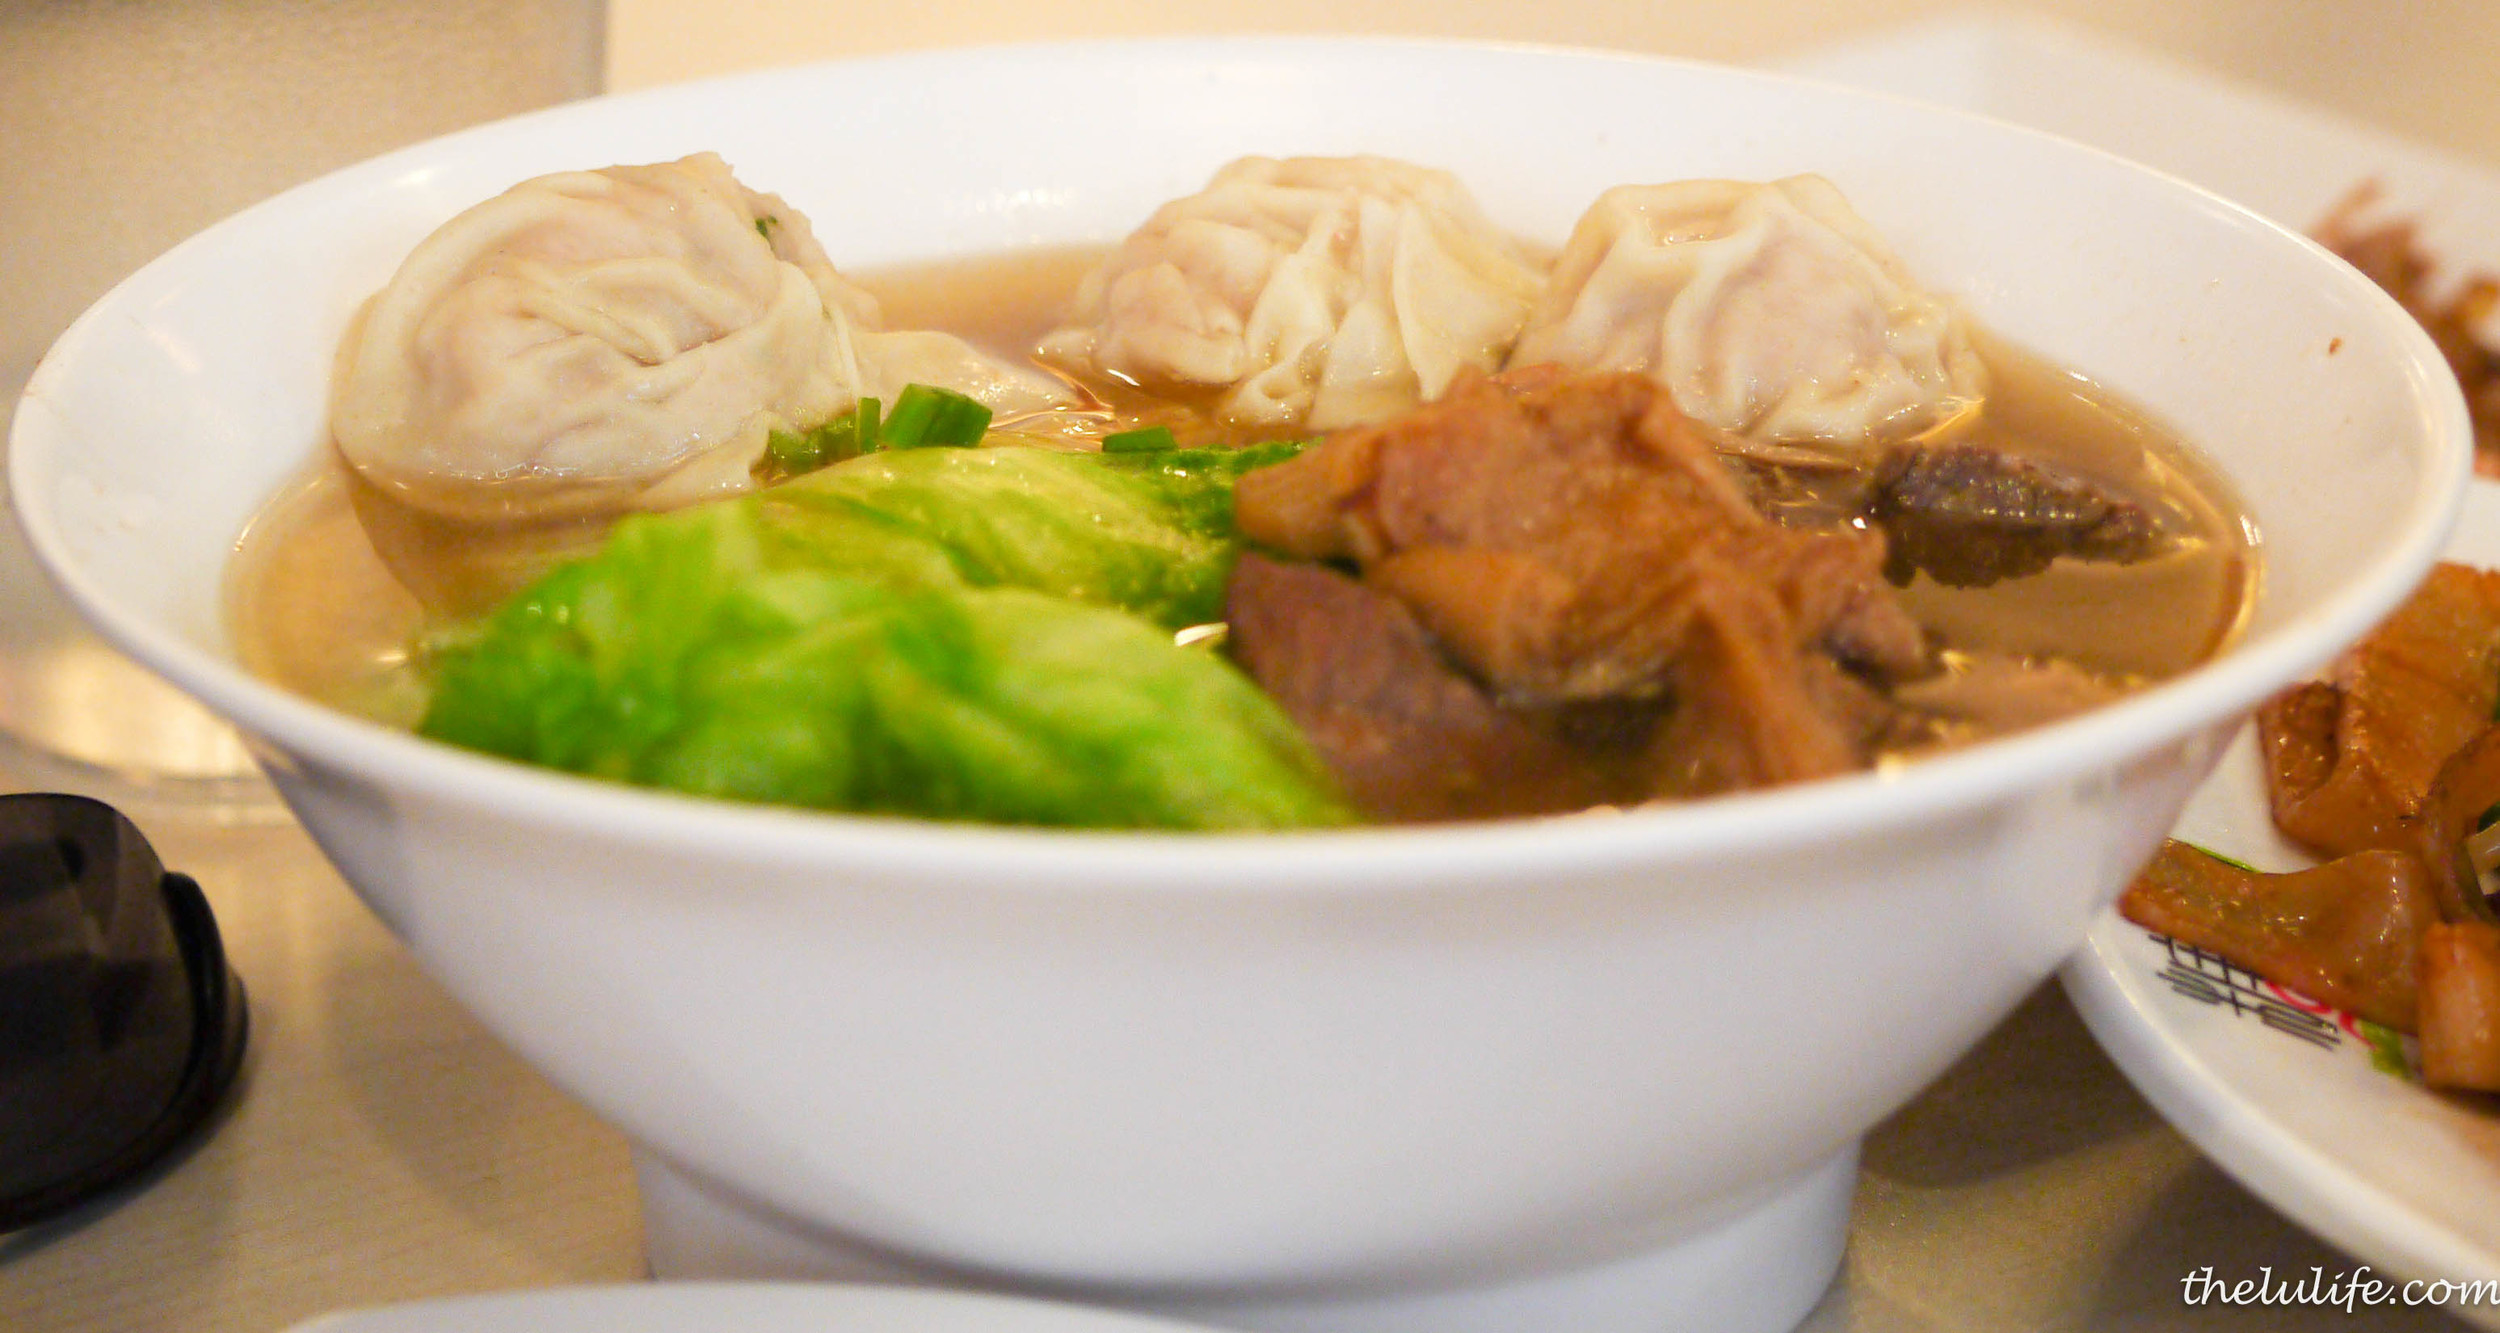 Figure 6. Beef and shrimp wonton ramen